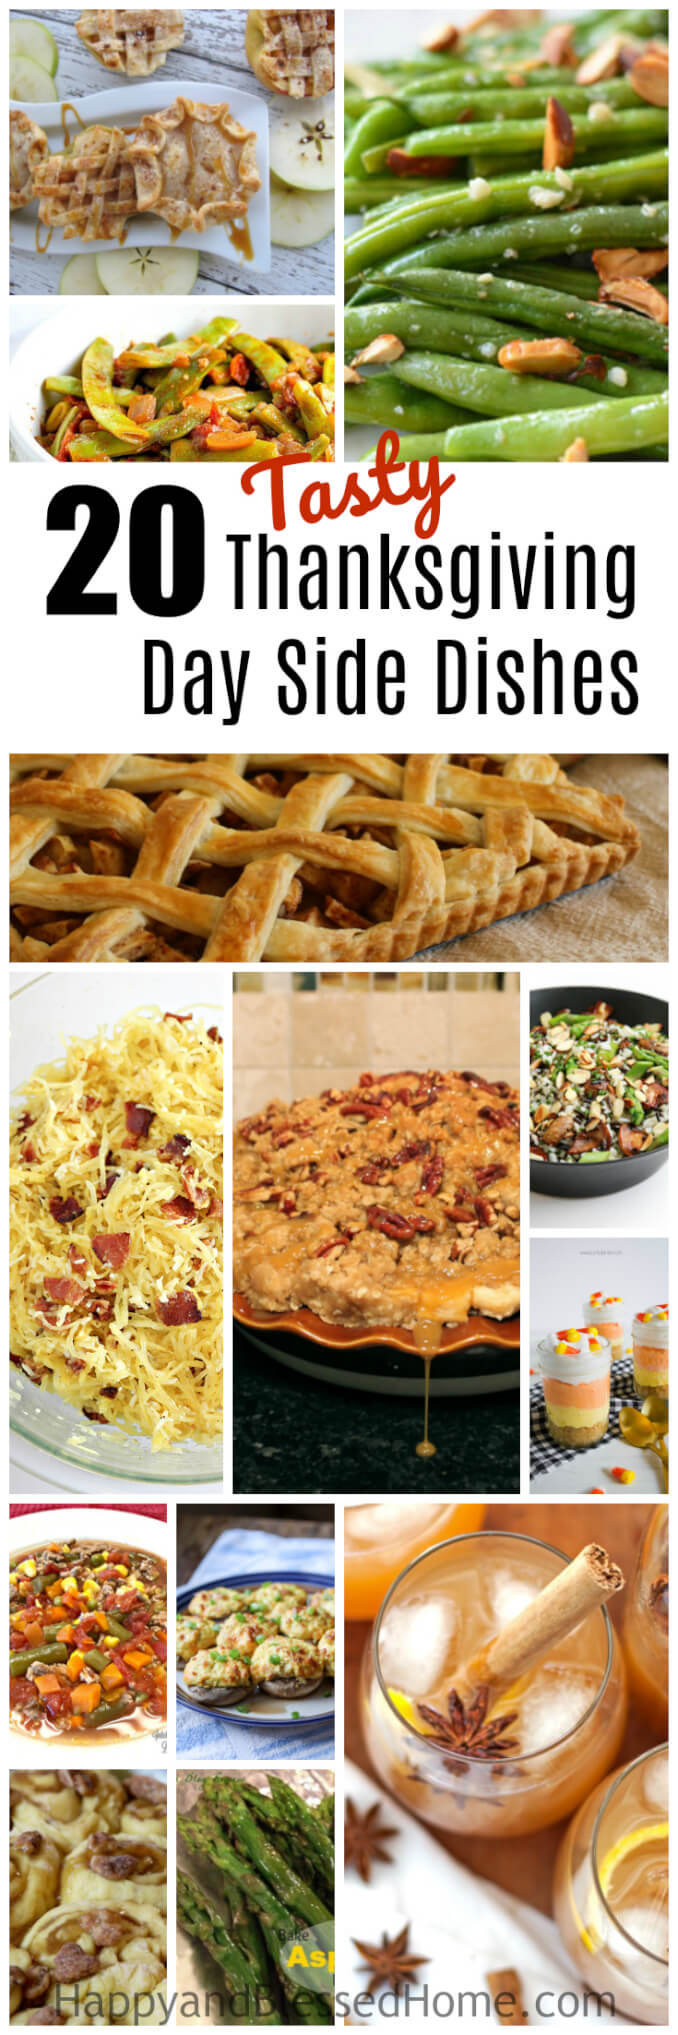 Don't get stuck in a Thanksgiving Day rut this year. Try something new! You'll love this list of 20 Tasty Thanksgiving Day Side Dishes including delicious recipes with apples, green beans, rice, stuffing, corn, and so much more.